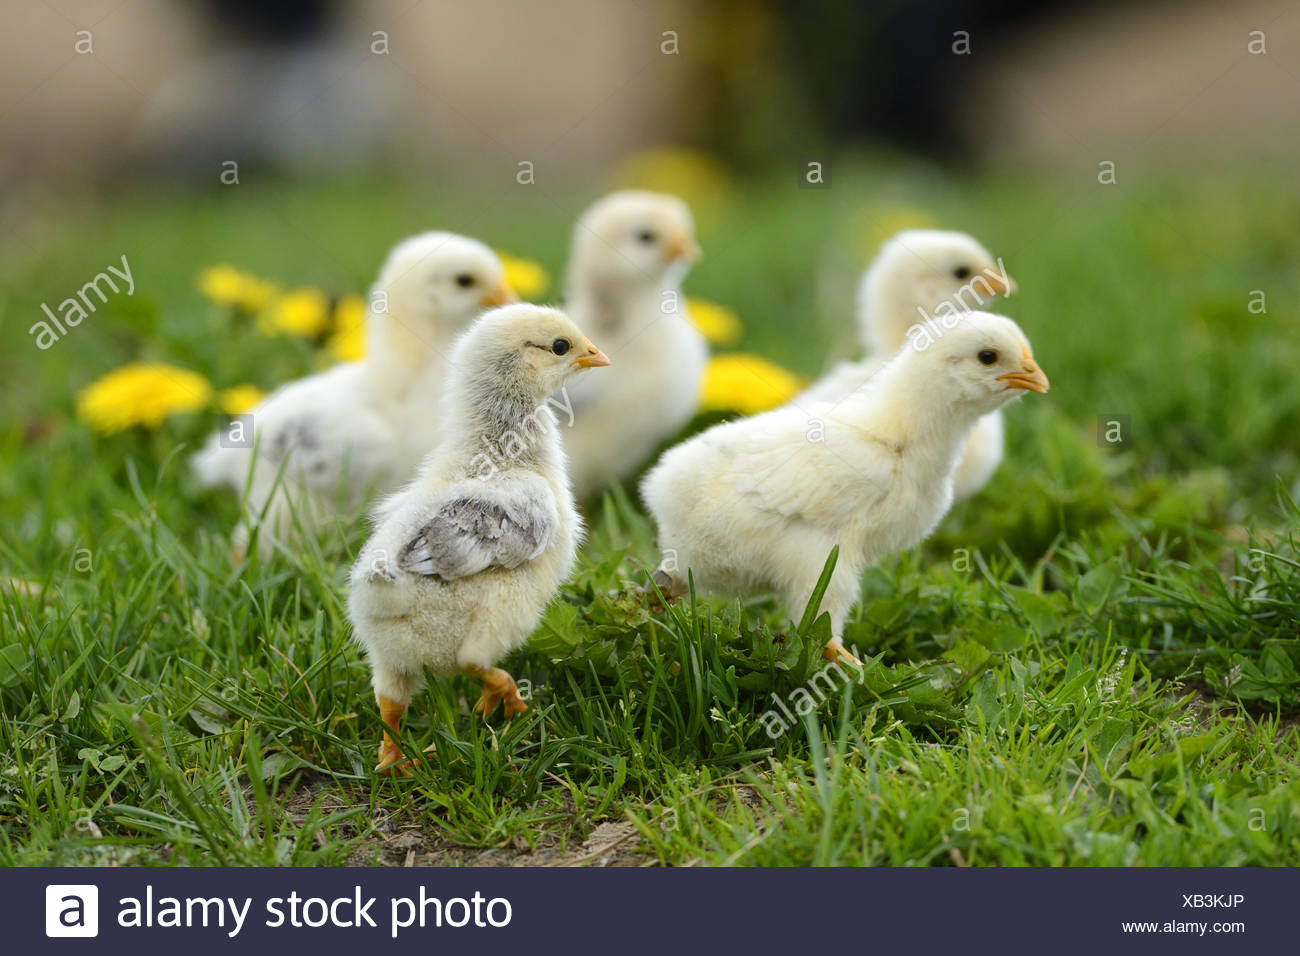 domestic fowl (Gallus gallus f. domestica), one week old chickens in a meadow, Germany Stock Photo